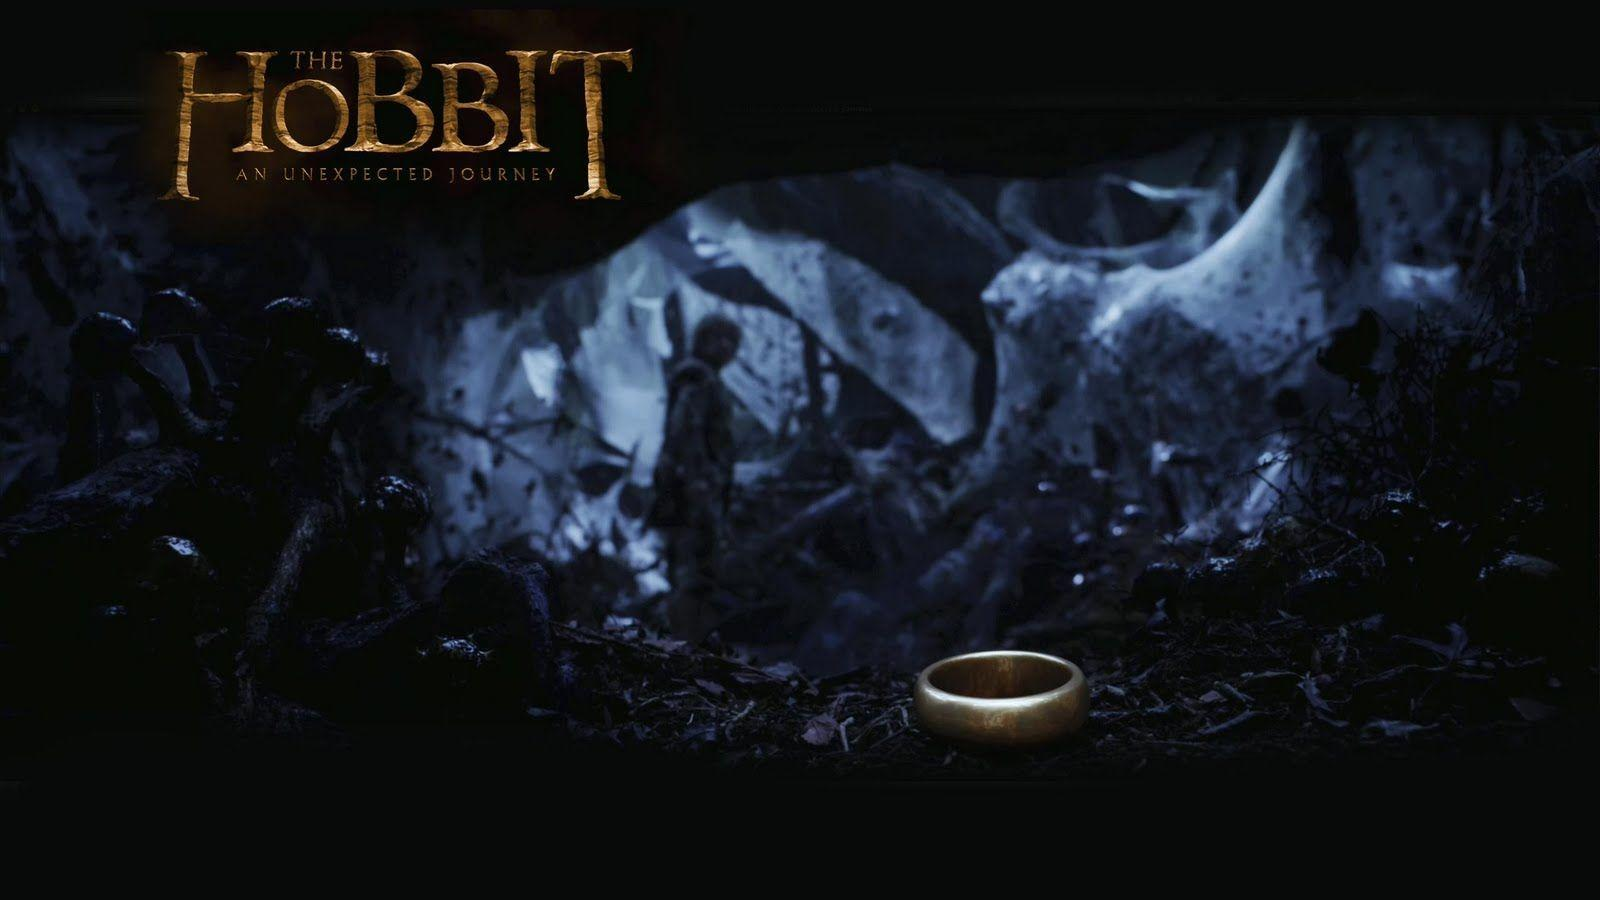 The Hobbit - The Ring Wallpaper - The Hobbit Wallpaper (33042240 ...